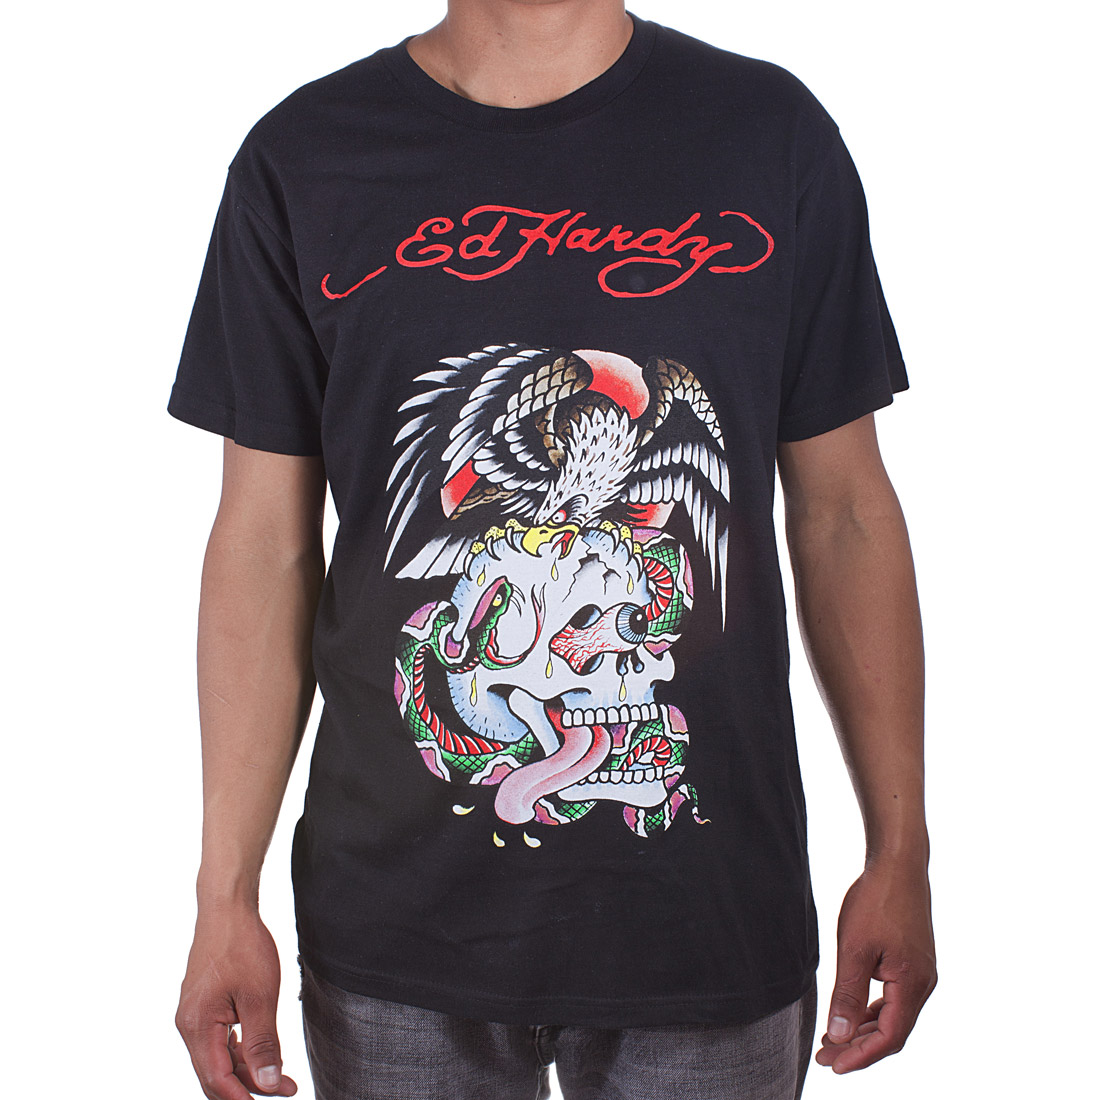 Ed Hardy Mens Eagle and Skull Tattoo Graphic Tee Shirt - Black